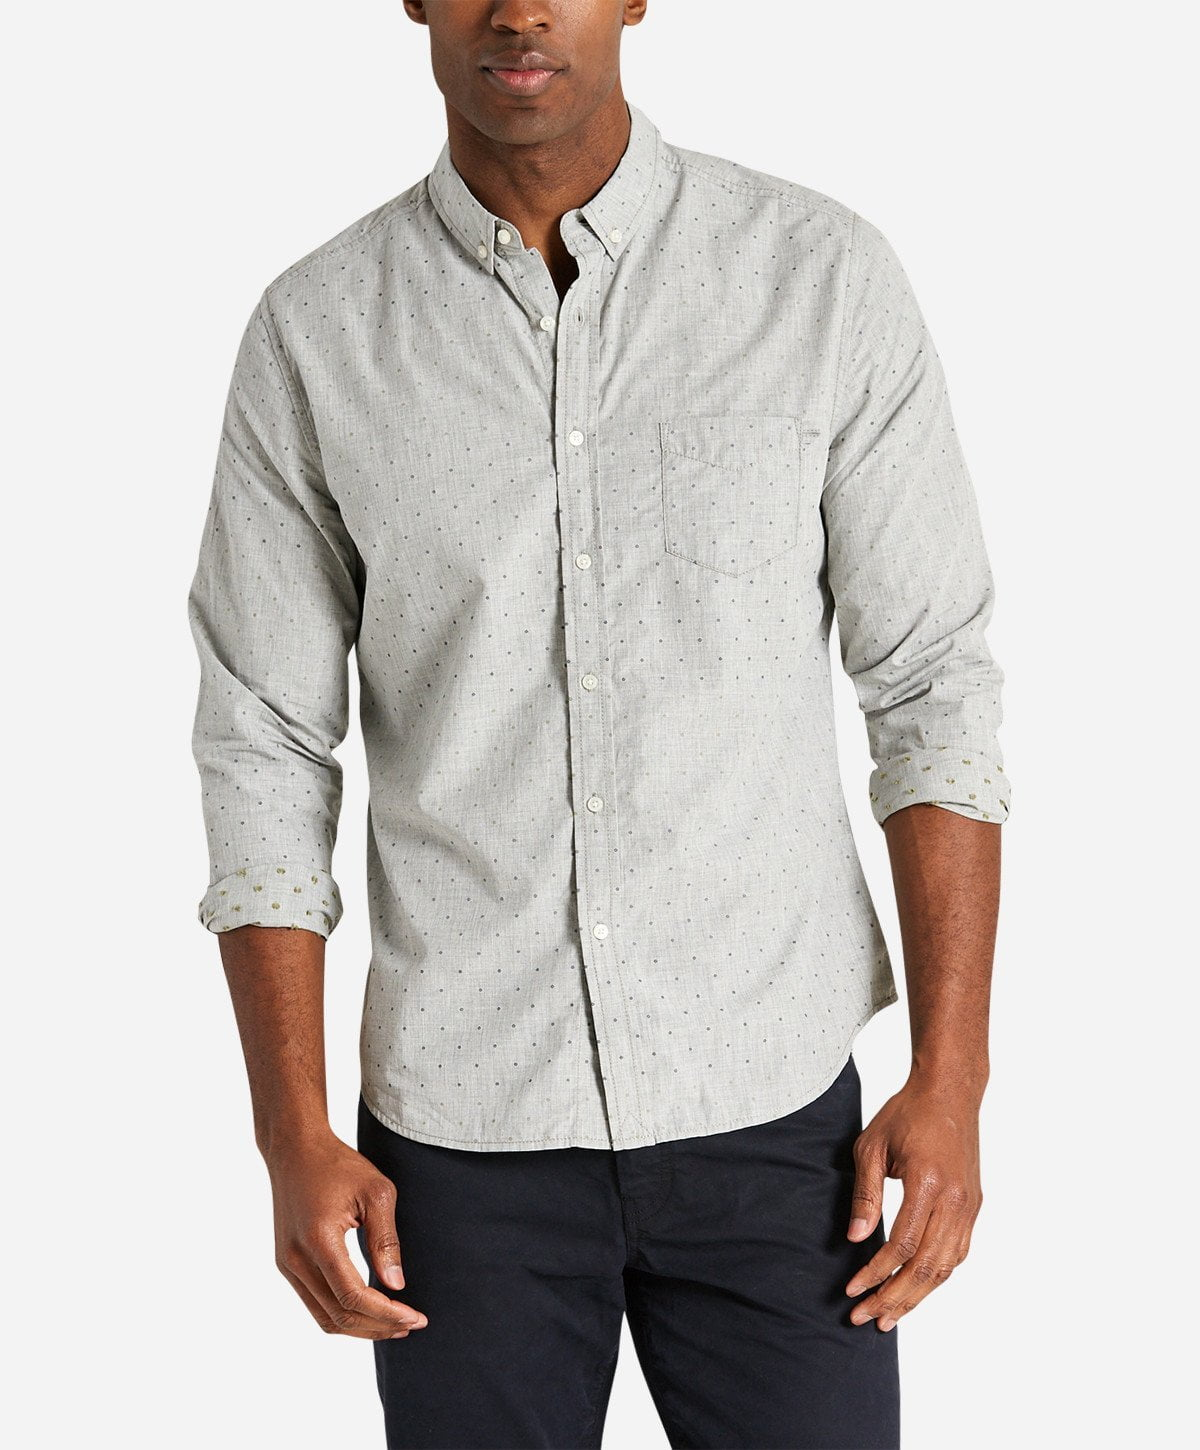 Larchmont Shirt - Heather Grey